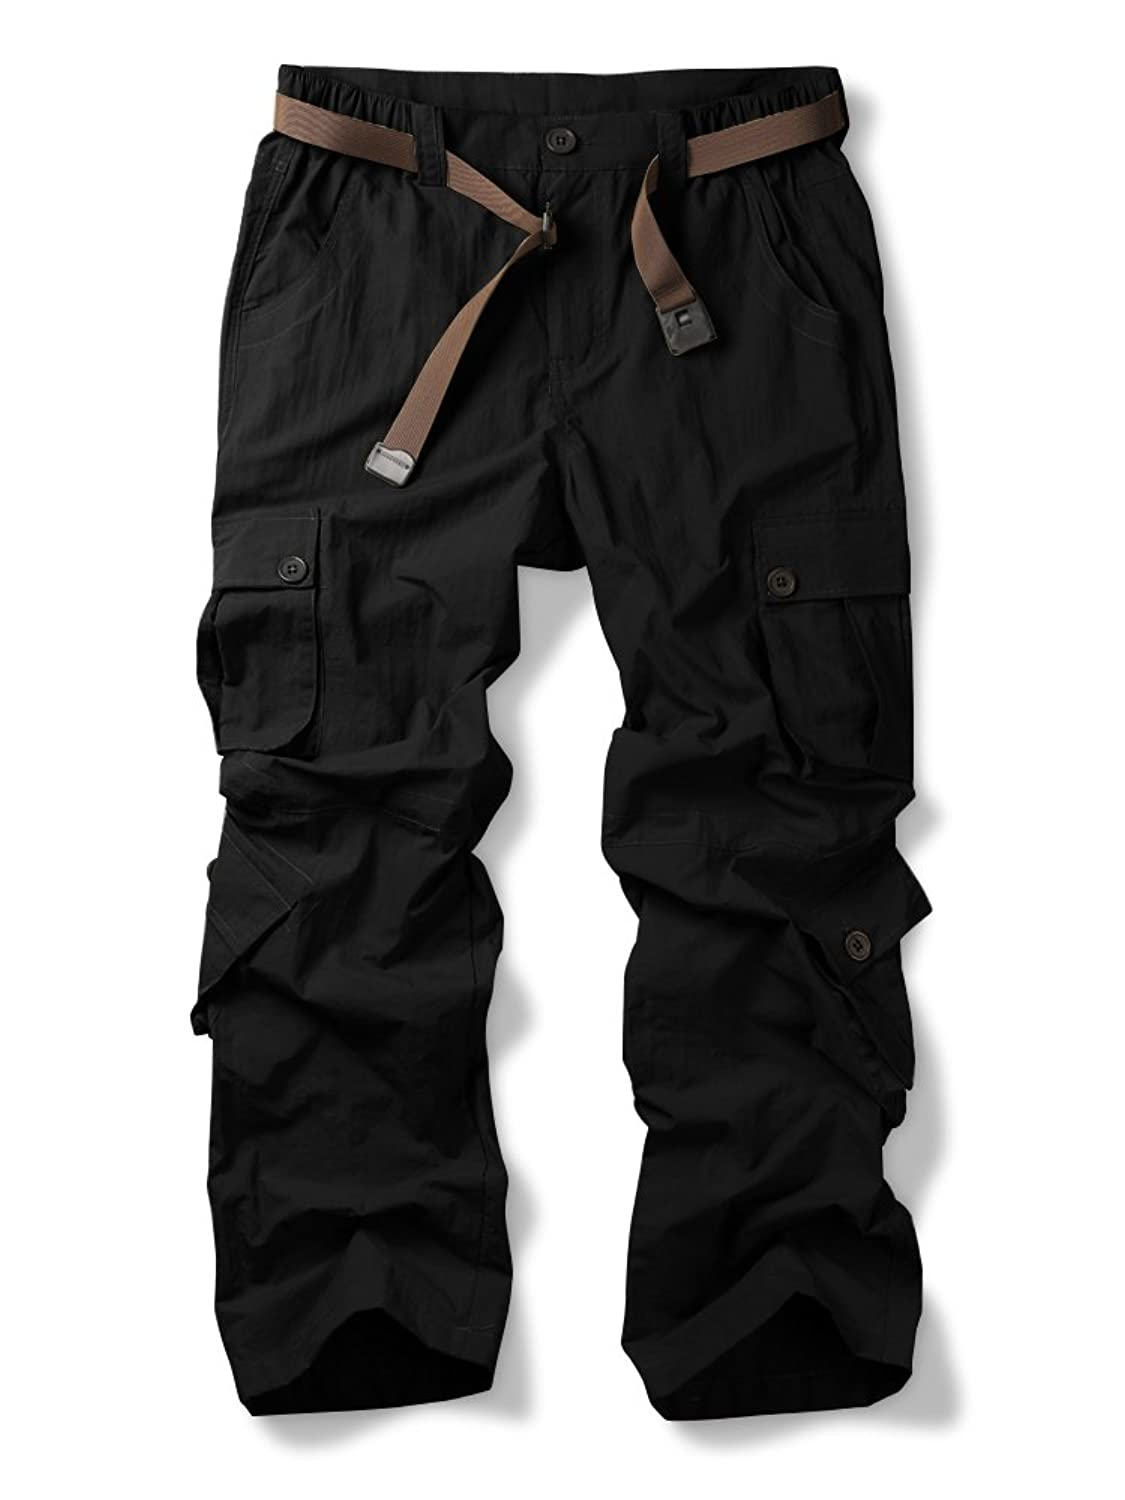 Jessie Kidden Men's Outdoor Casual Quick Dry Lightweight Breathable Hiking Fishing Cargo Pants with 8 Pockets #6052